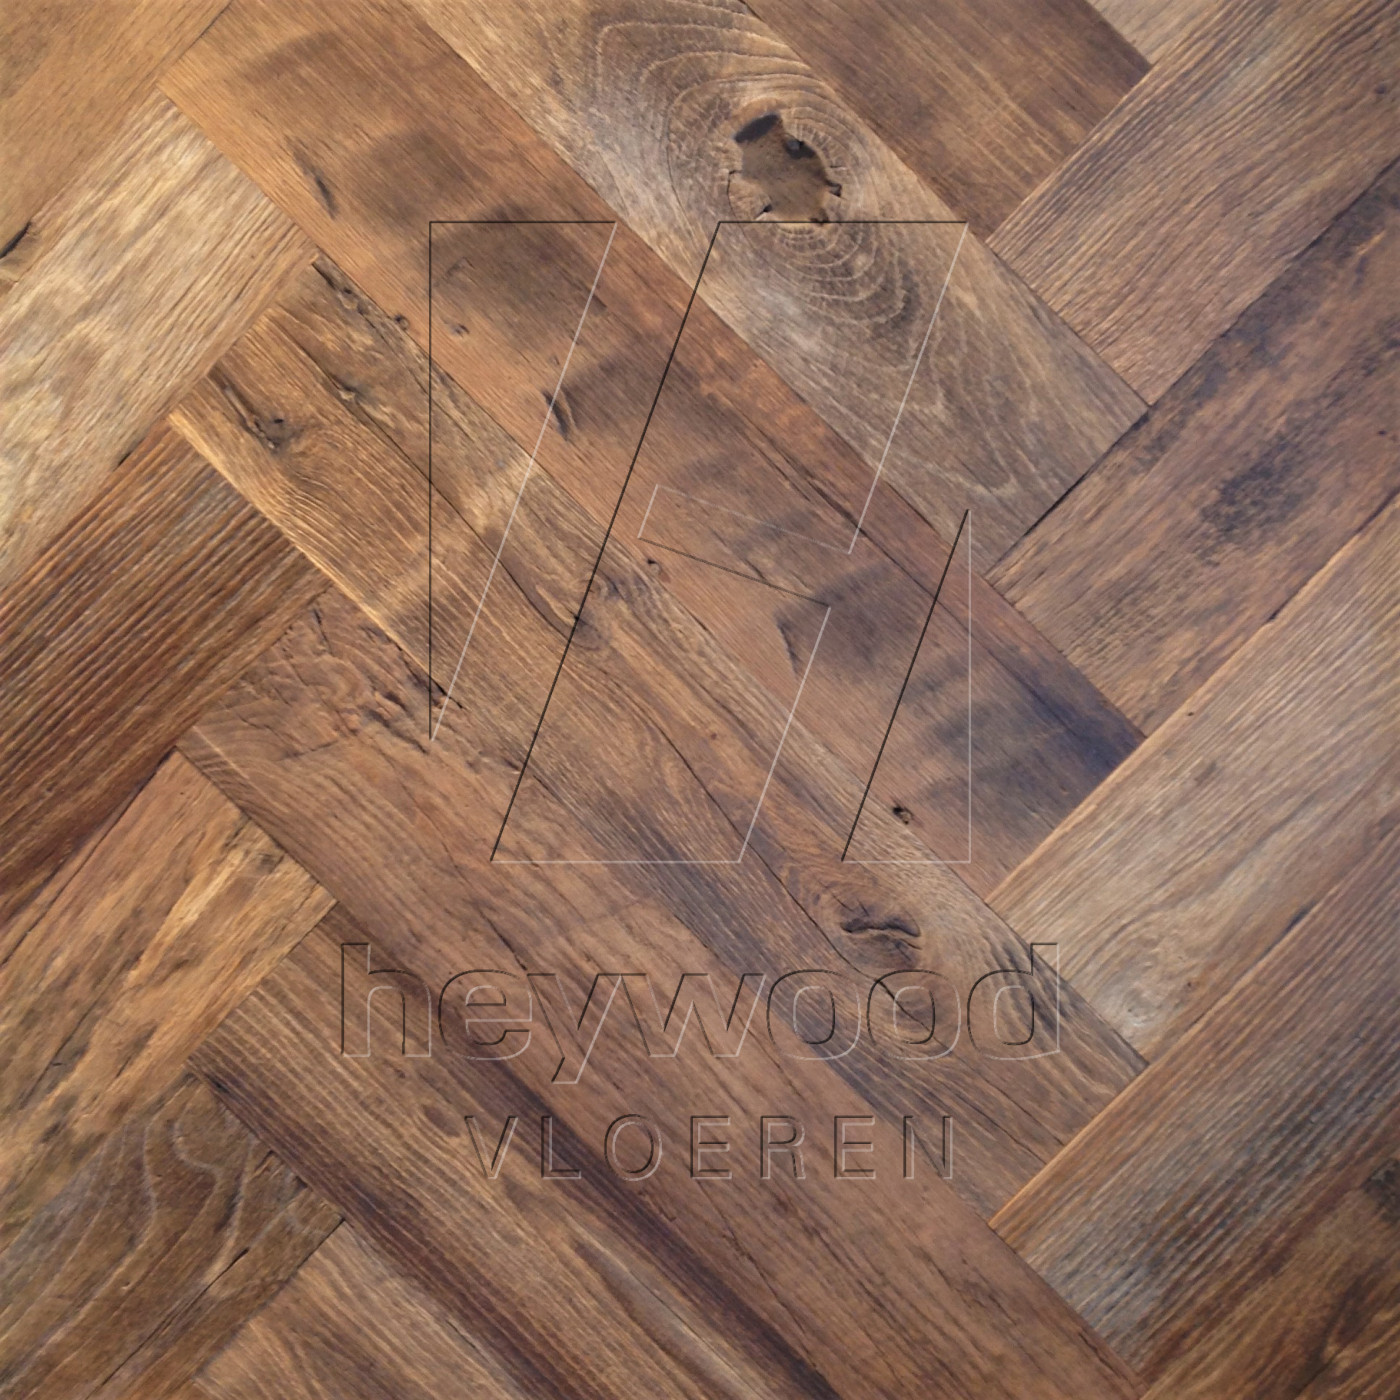 Cotswolds Herringbone 120 x 600mm (200 years old Reclaimed Oak, Outside) in Pattern & Panels (Outsides / Insides) of Old Reclaimed Wood